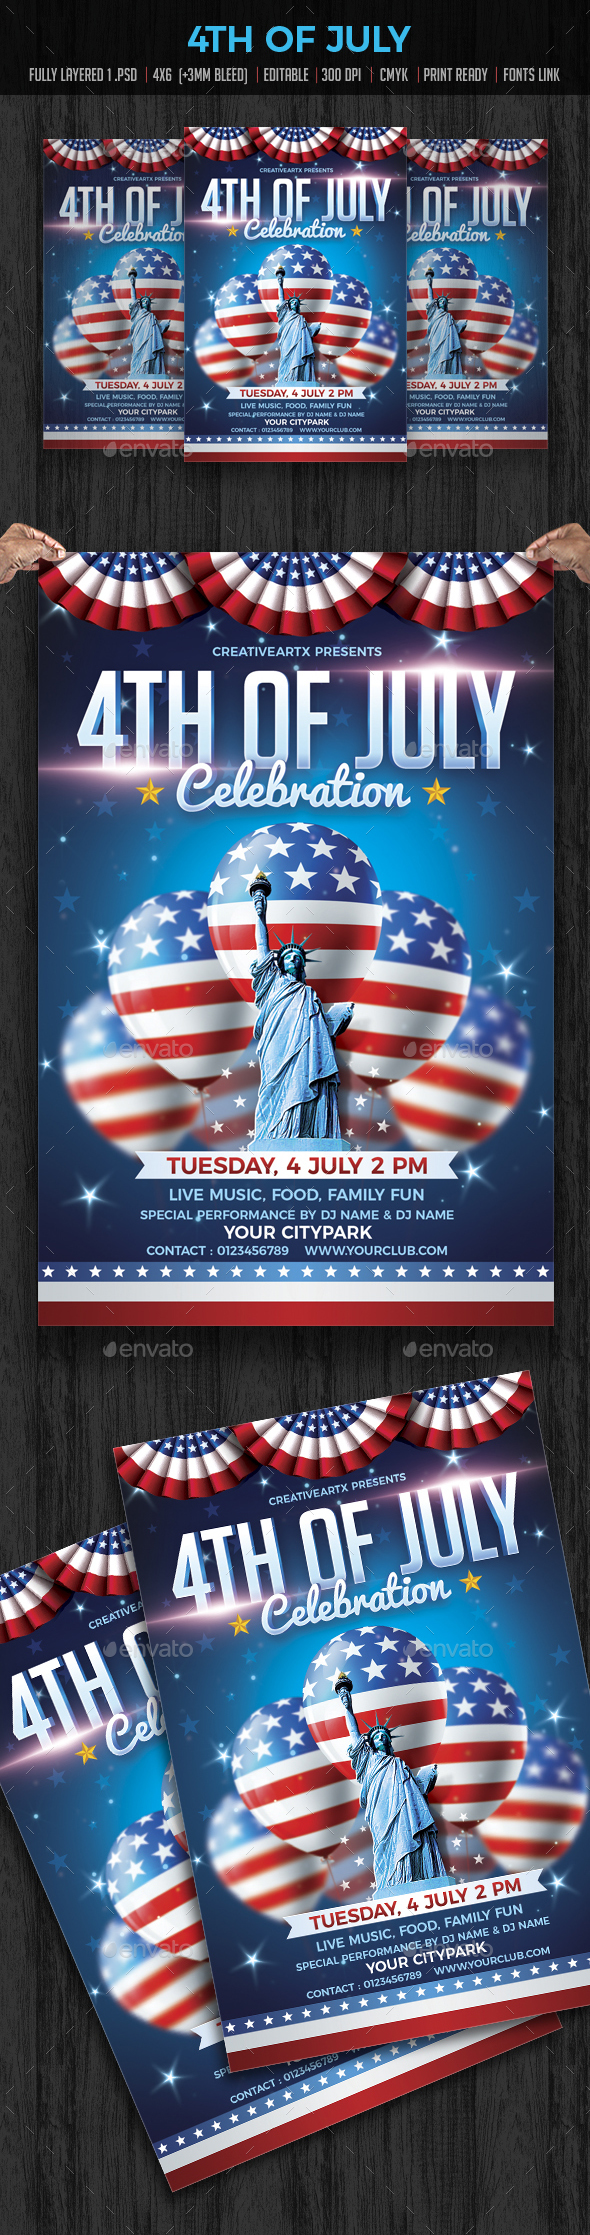 4th of July Flyer | Events